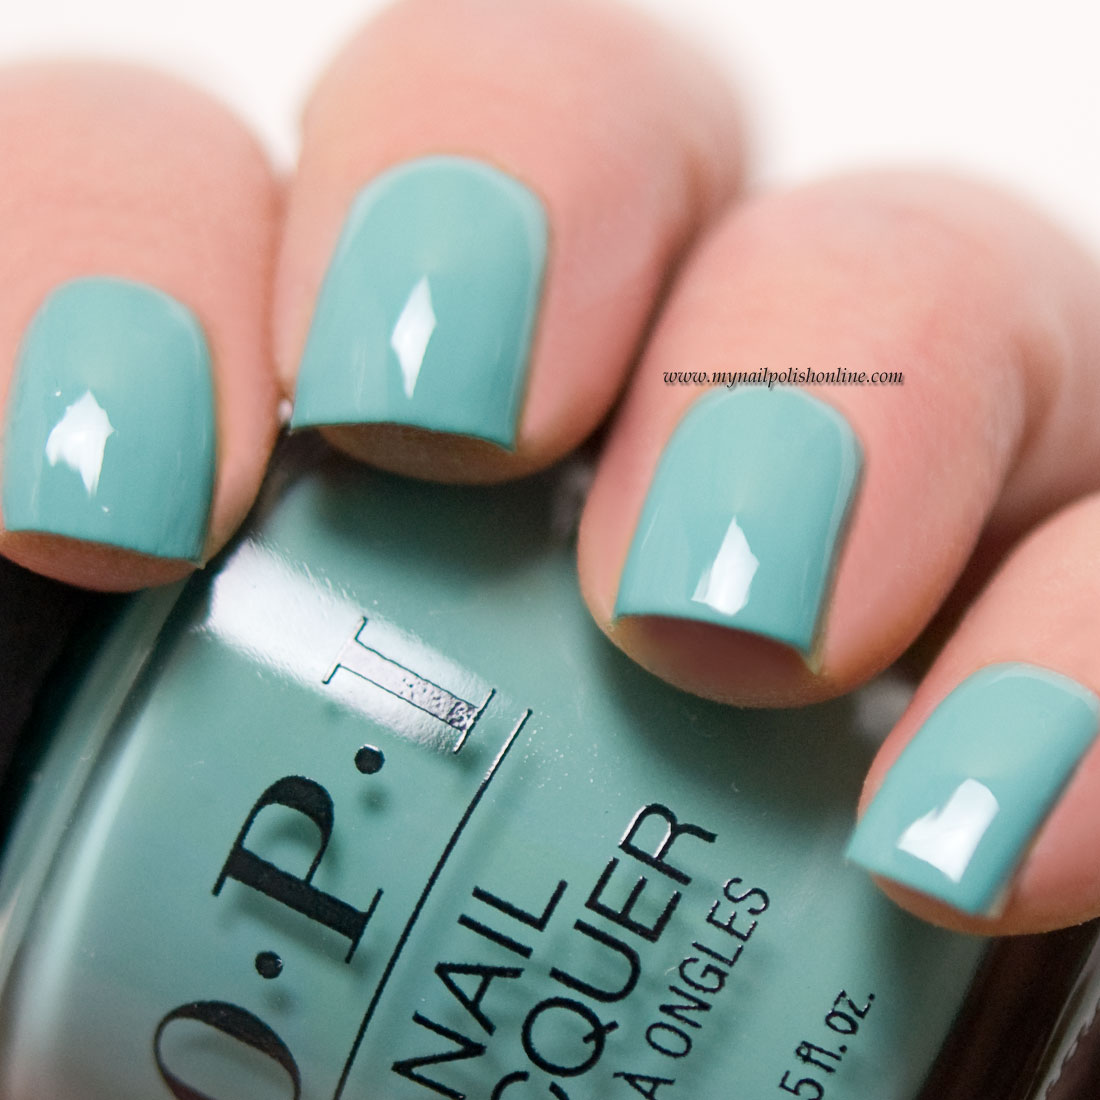 OPI - Closer than you might belem